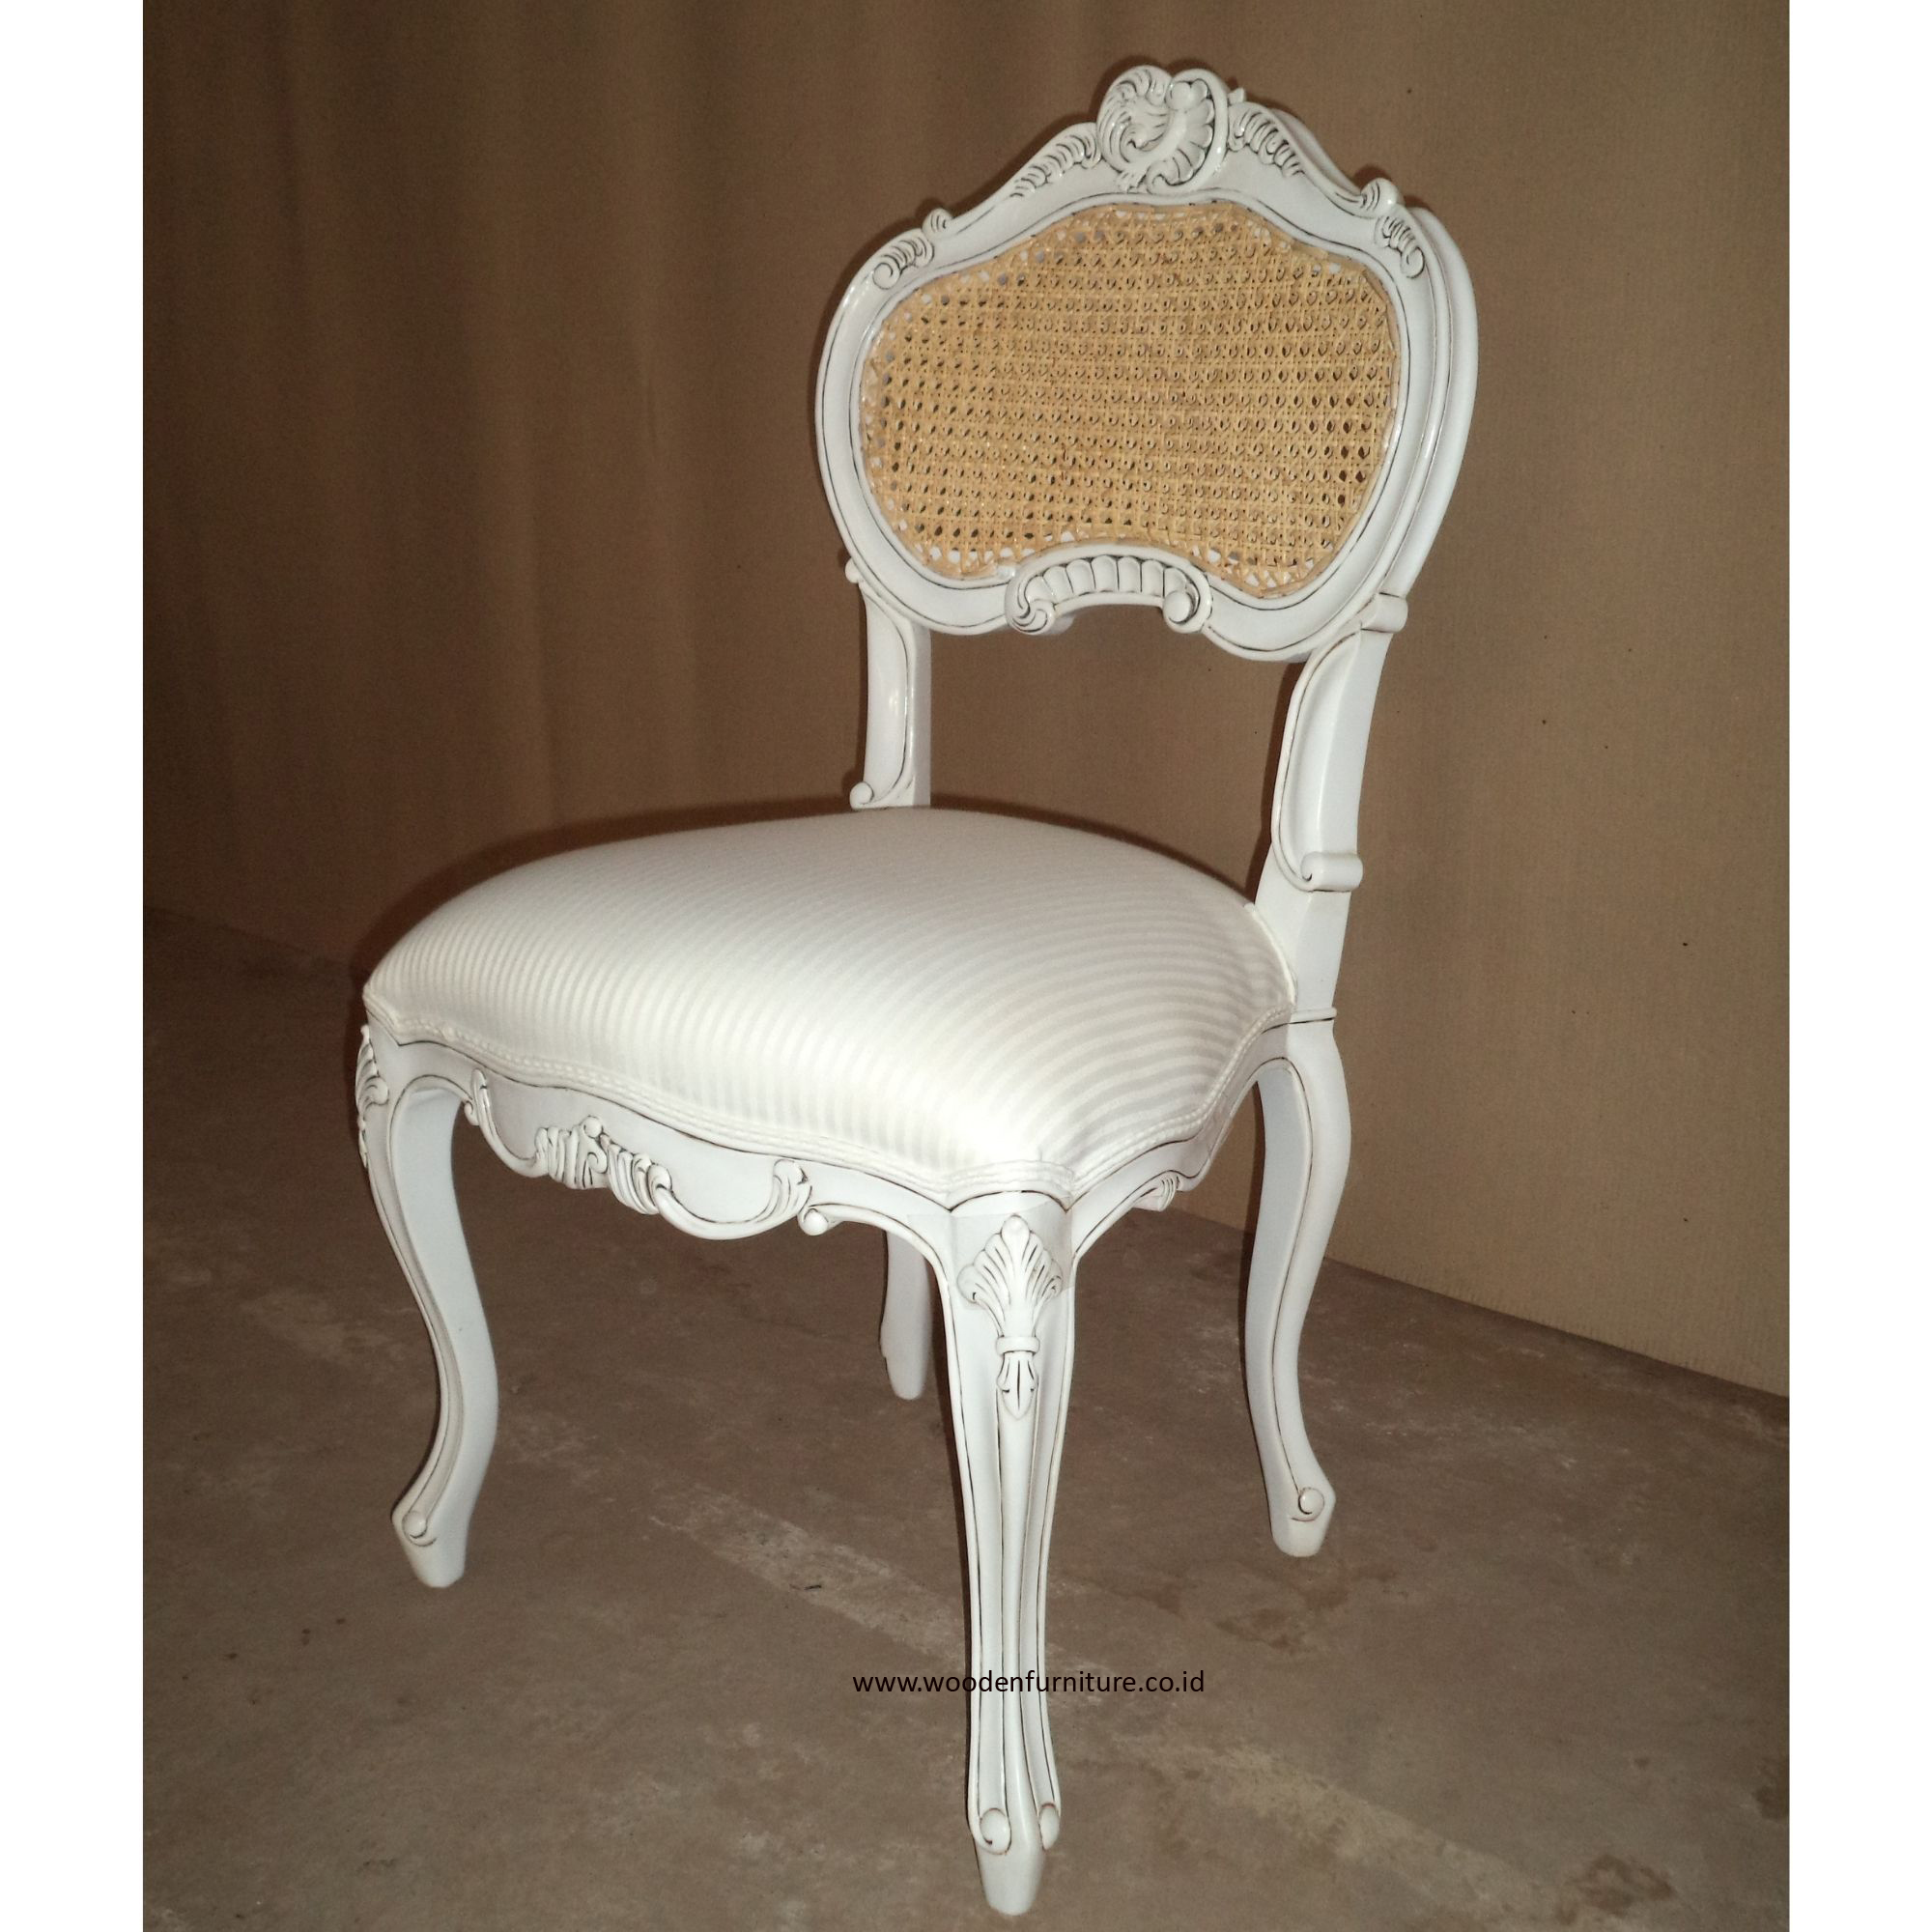 Antique Rattan Chair French Style Chair Cane Victorian Dining Chair Wooden Furniture Vintage European Home Furniture Buy Dining Chair Antique Chair French Provincial Furniture Product On Alibaba Com